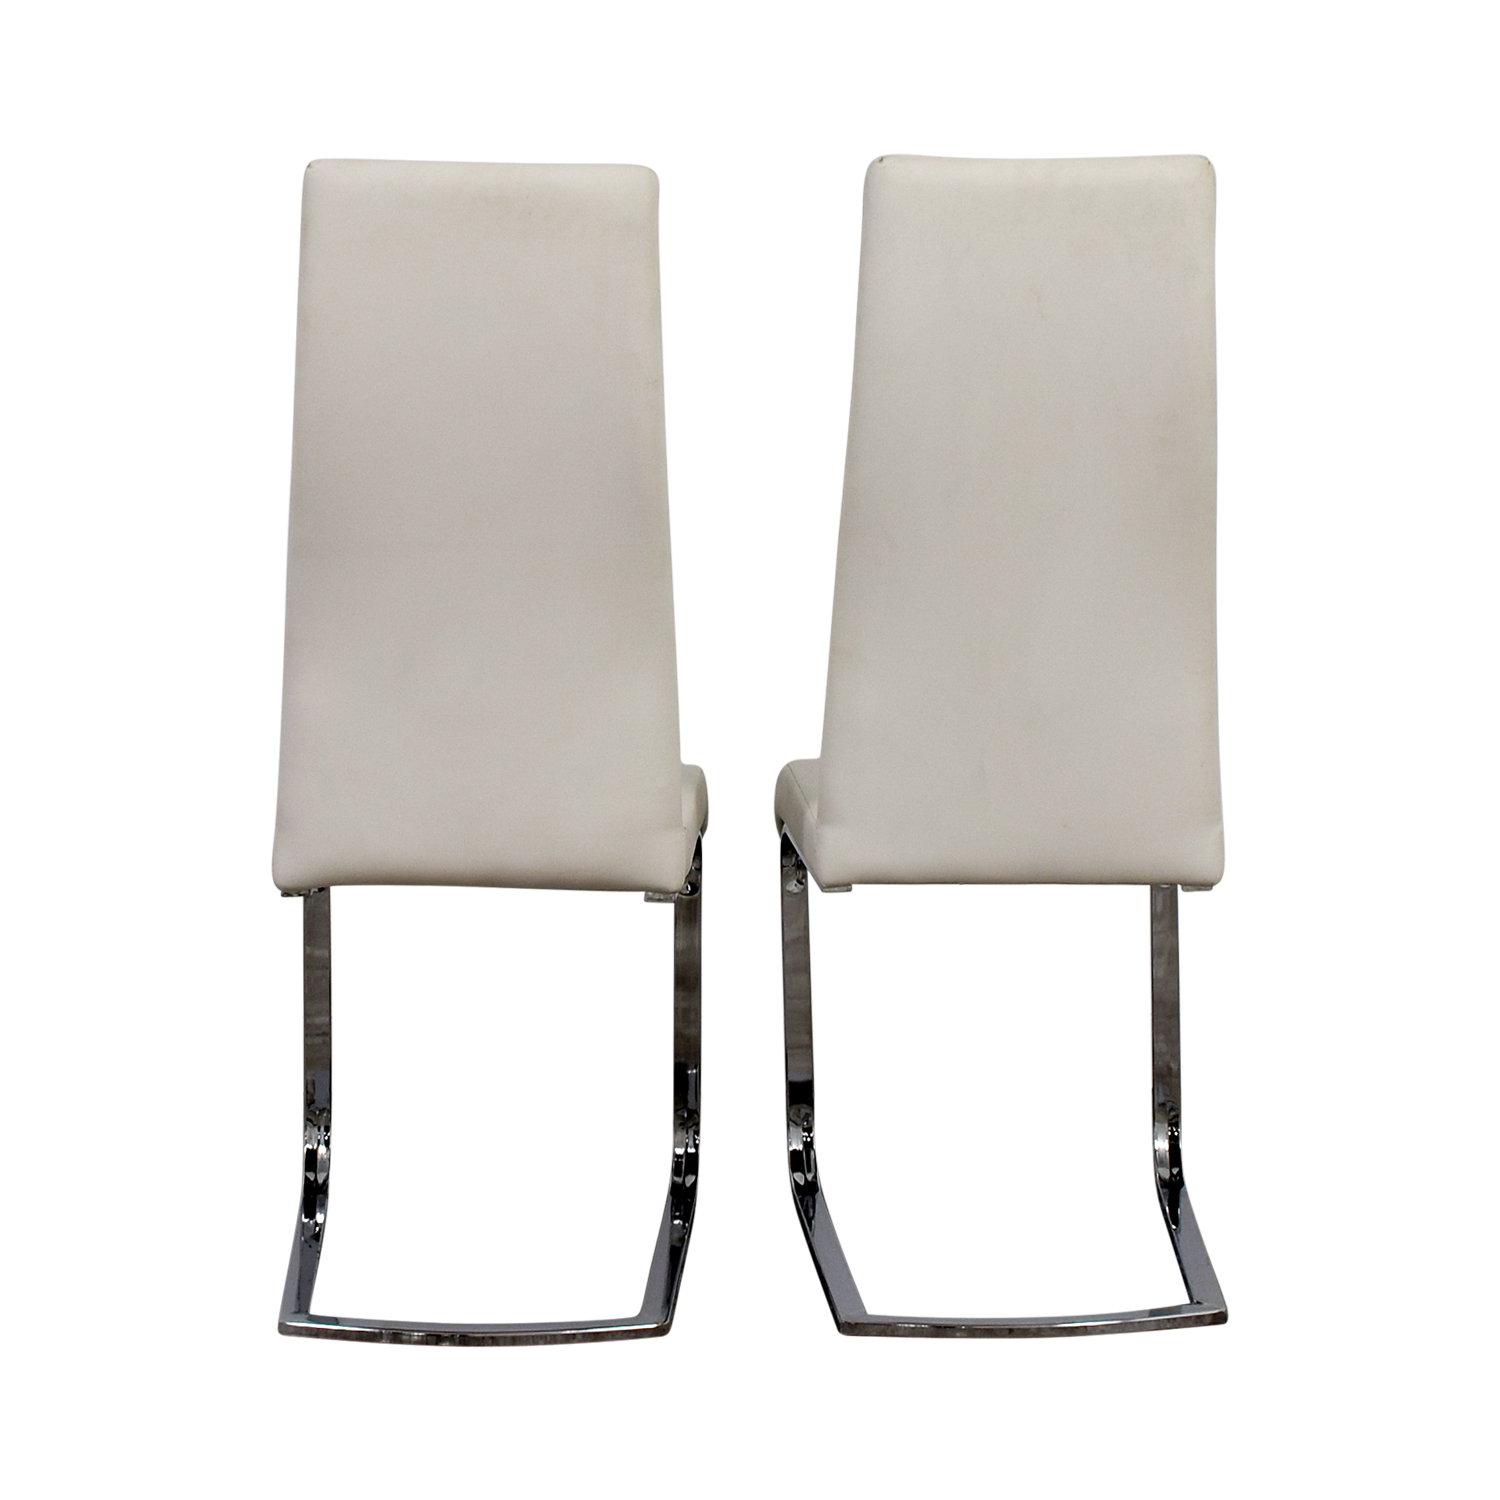 Coaster Furniture Coaster Furniture Breuer Style High Back Dining Chair in White Leatherette dimensions